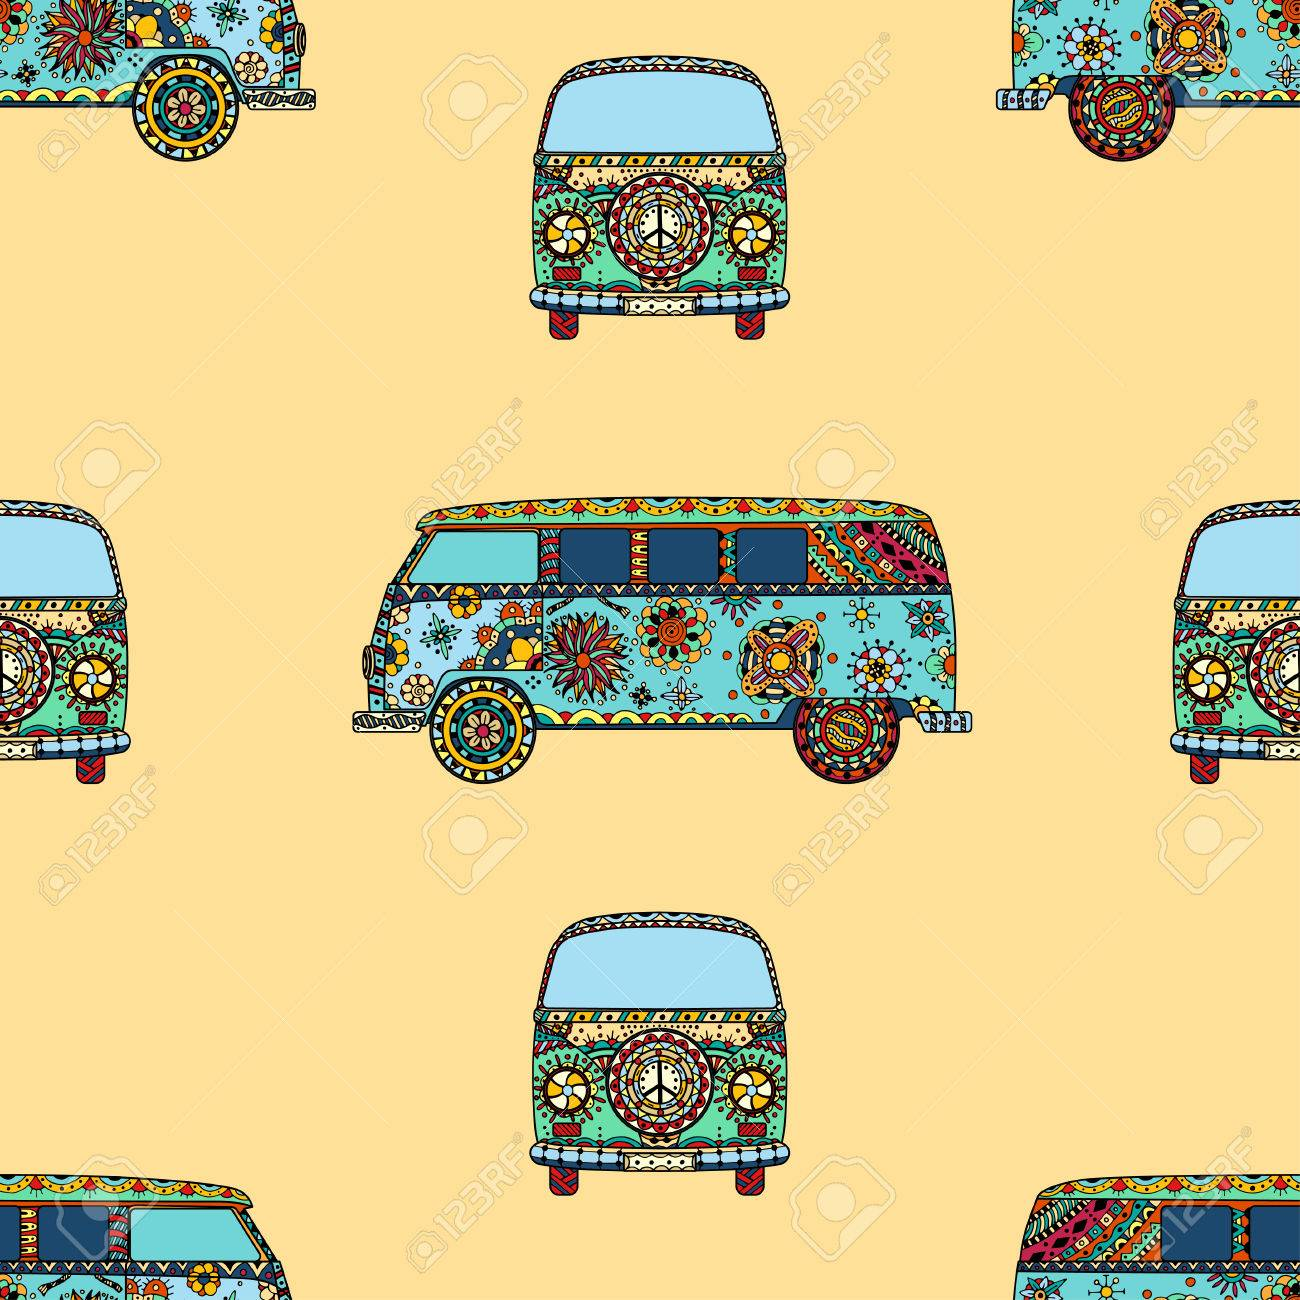 Seamless Pattern of Vintage car a mini van in style. Hand drawn image. The popular bus model in the environment of the followers of the hippie movement. Vector illustration. - 50374847